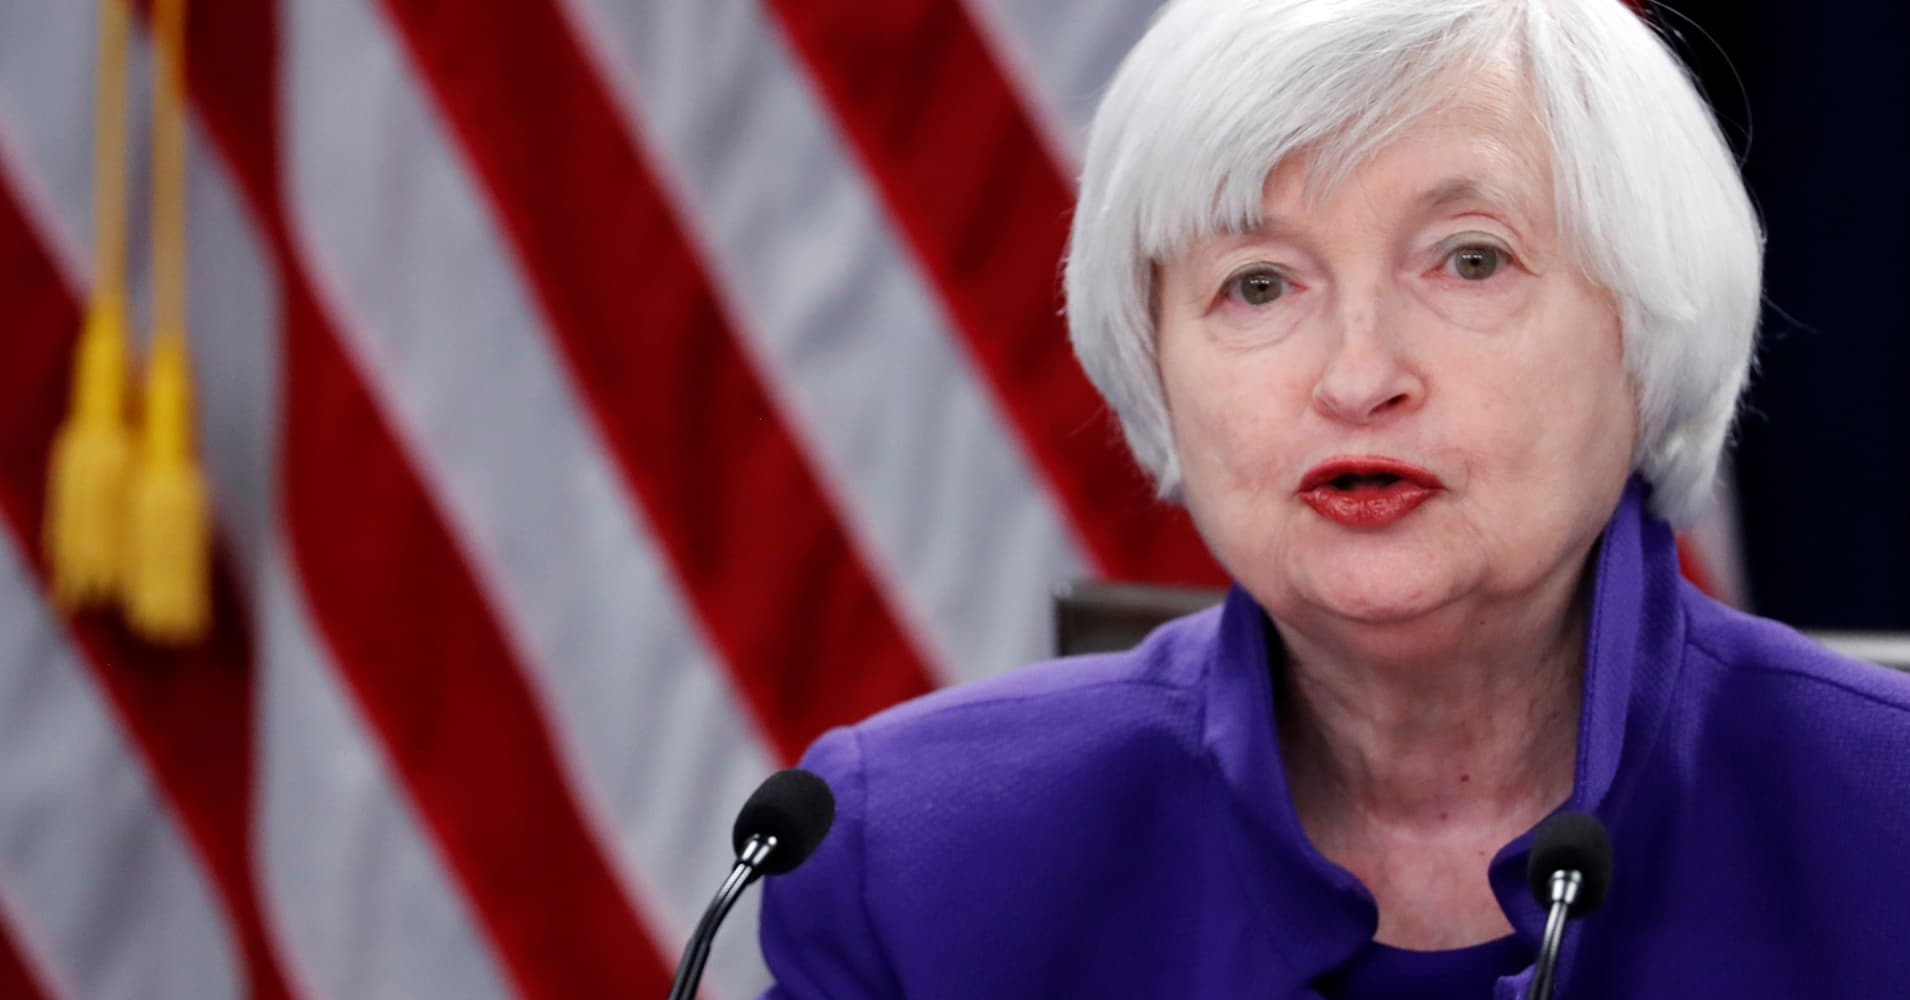 Fed chief Yellen says bitcoin is a 'highly speculative asset'